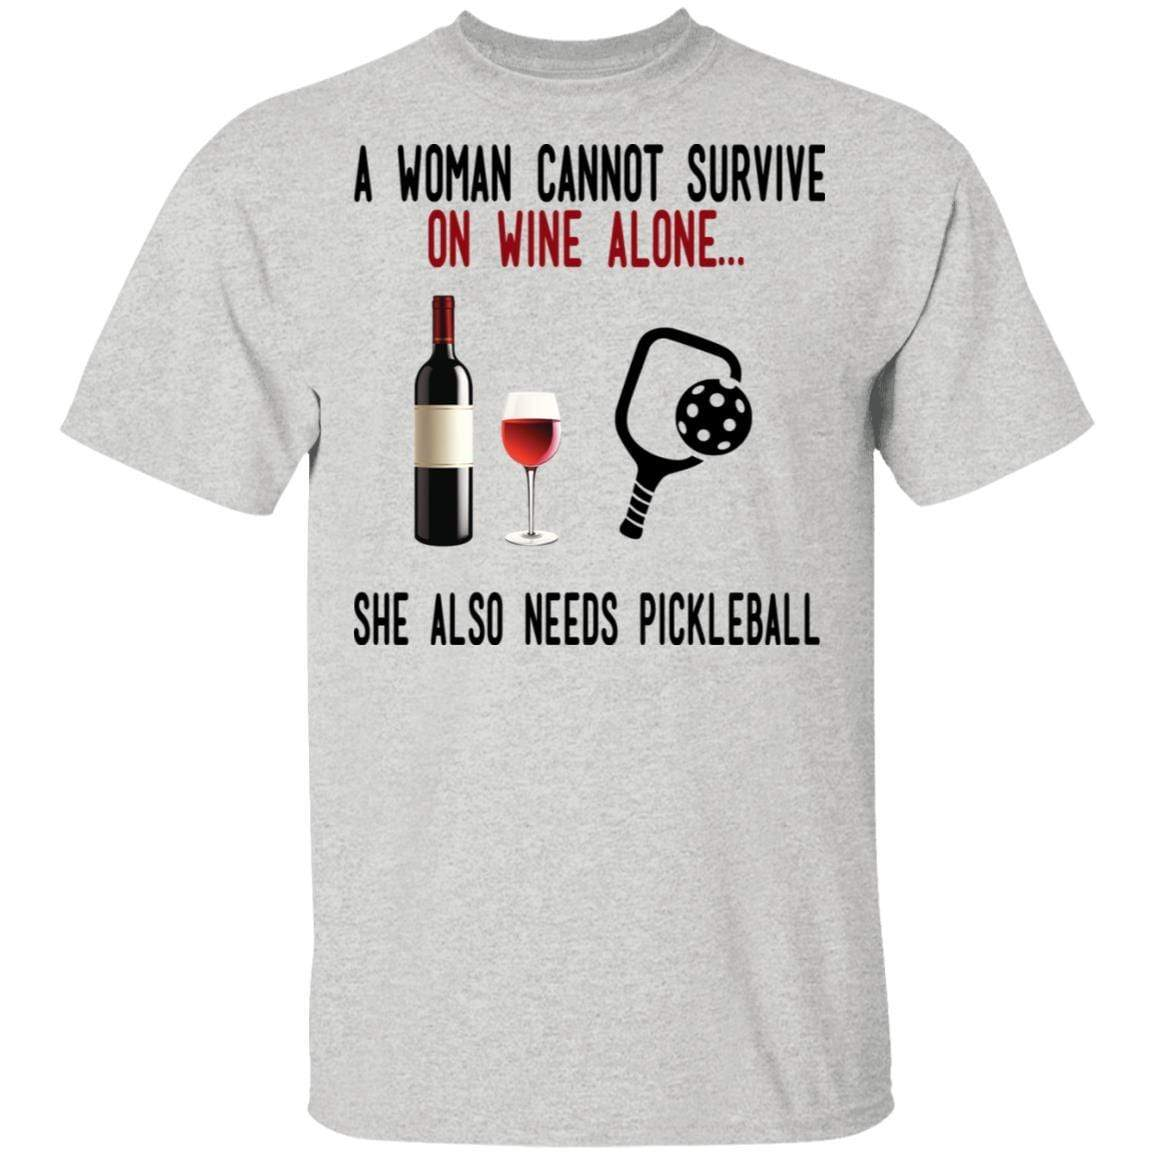 A Woman Cannot Survive On Wine Alone She Also Needs Pickleball T-Shirts, Hoodies 1049-9952-86569608-48184 - Tee Ript